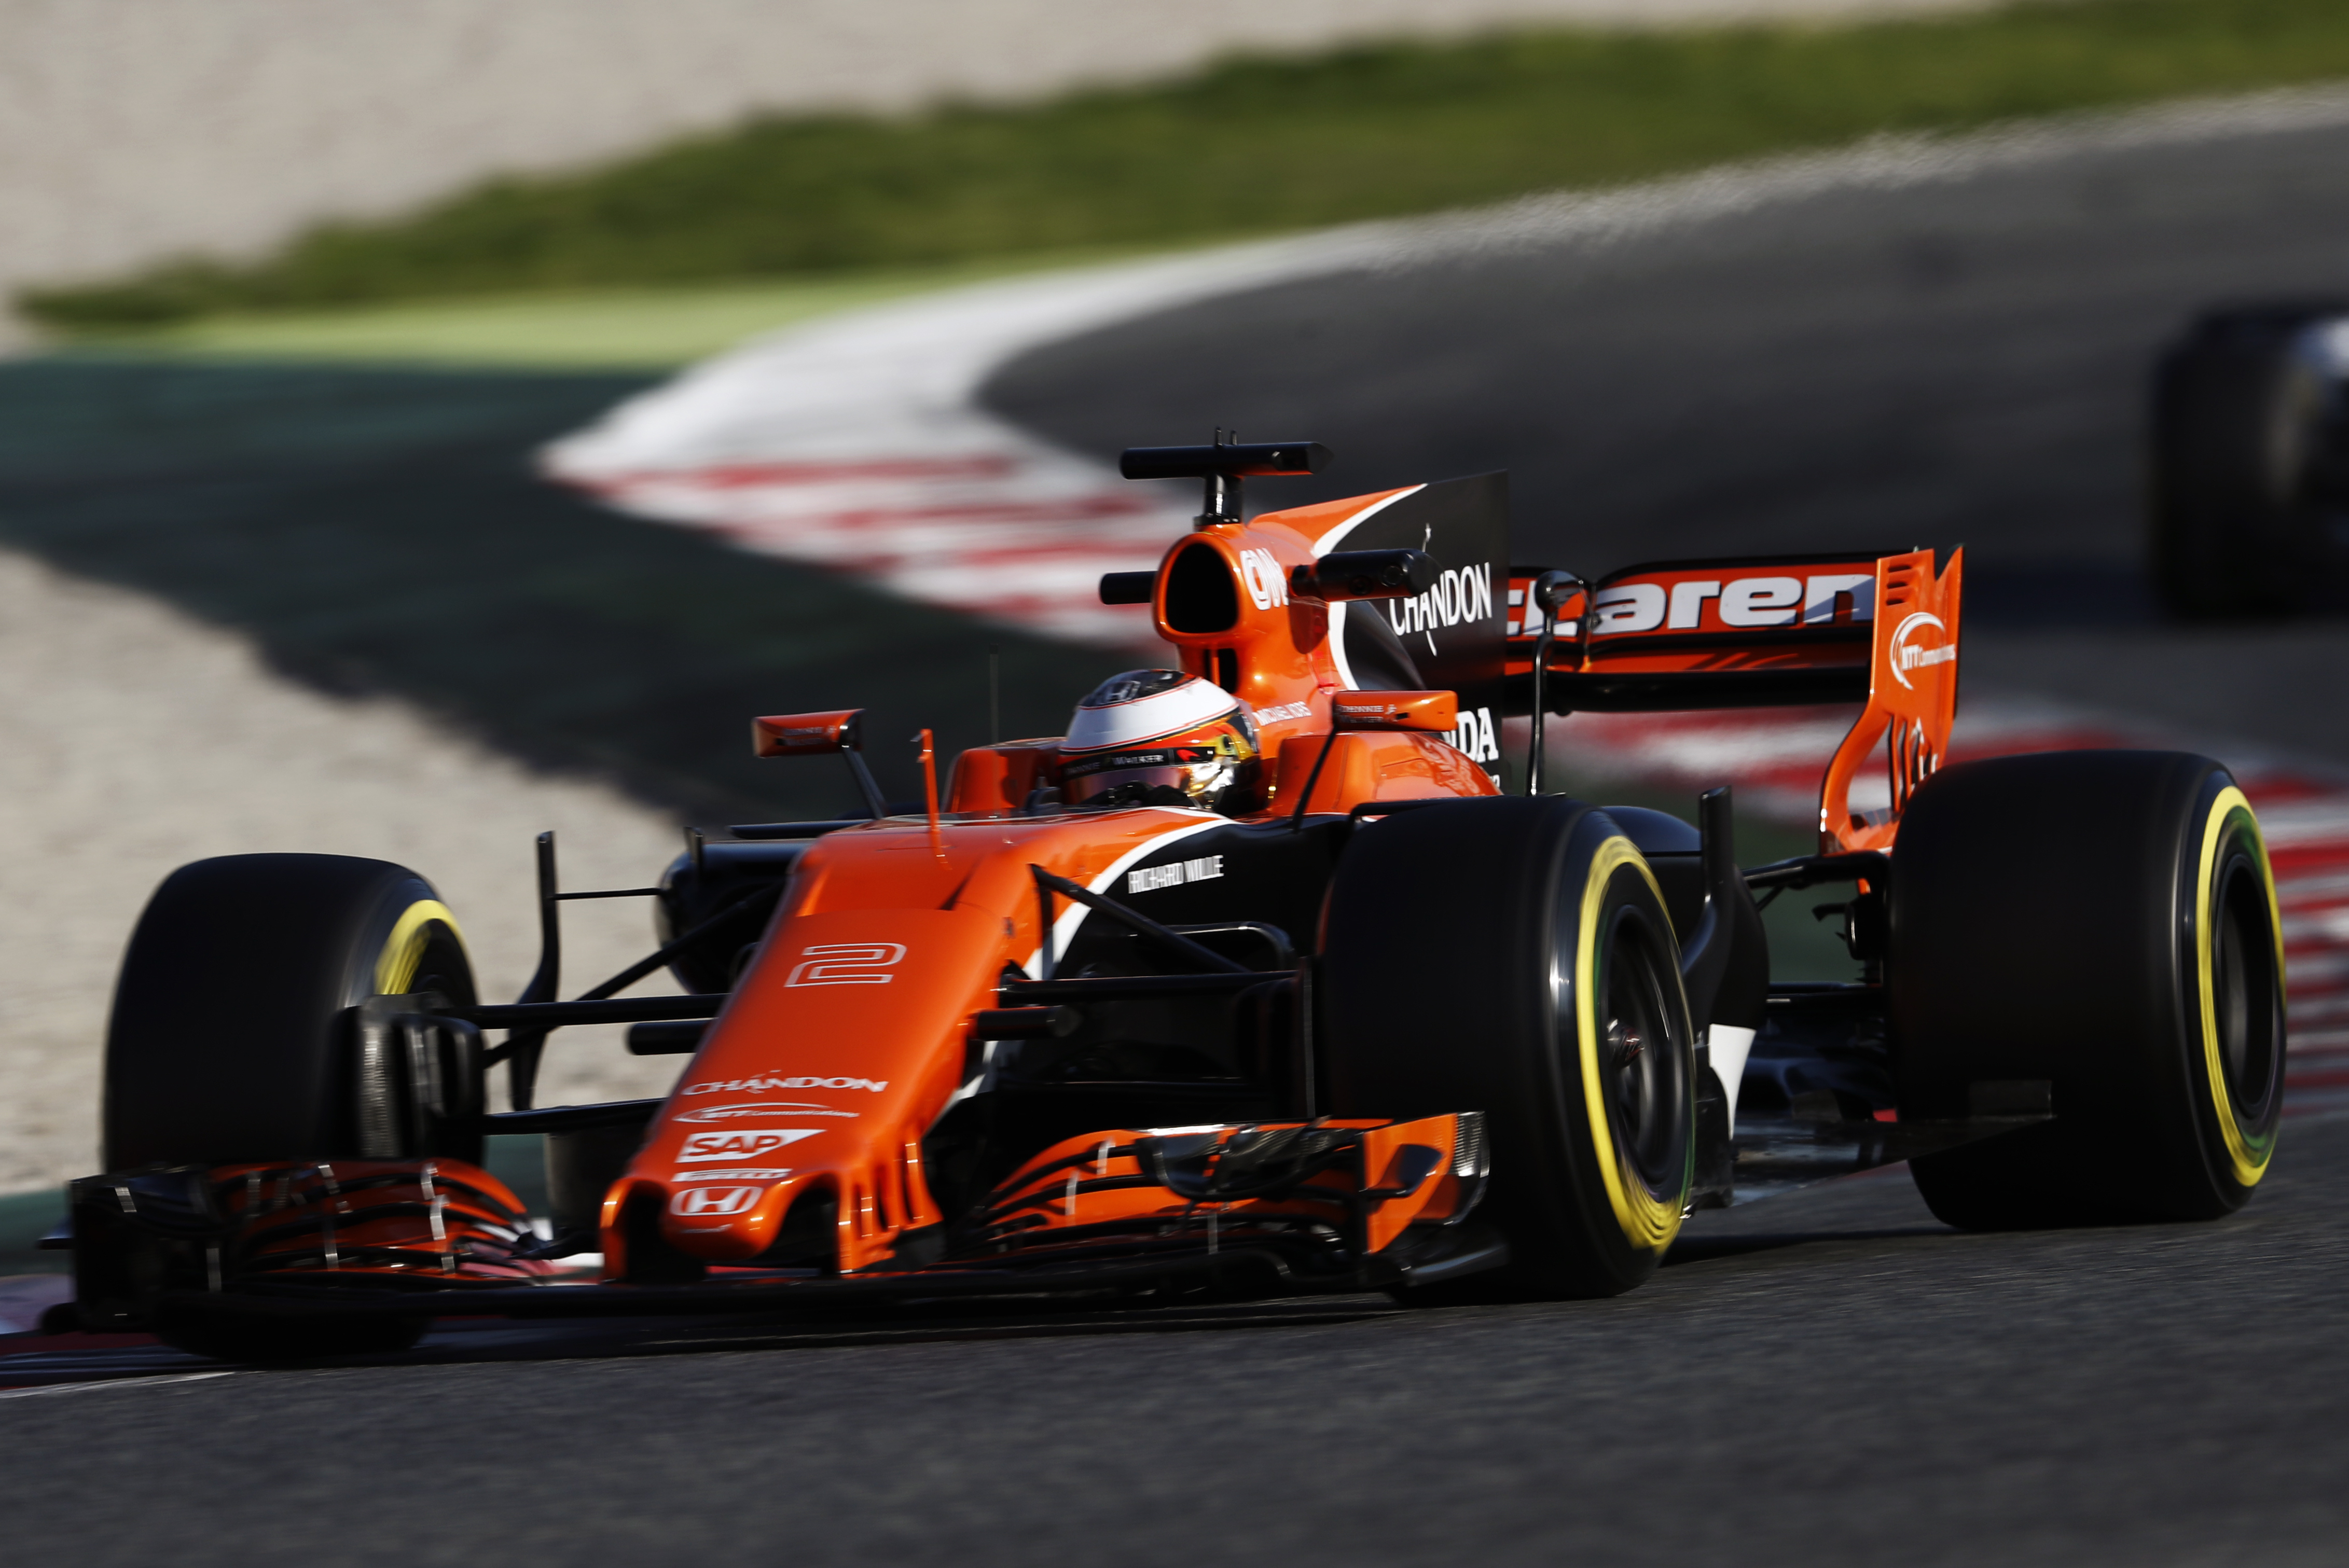 McLaren MCL32 2017 race car featuring numerous Stratasys 3D printed parts to improve car performance (Photo: Business Wire)